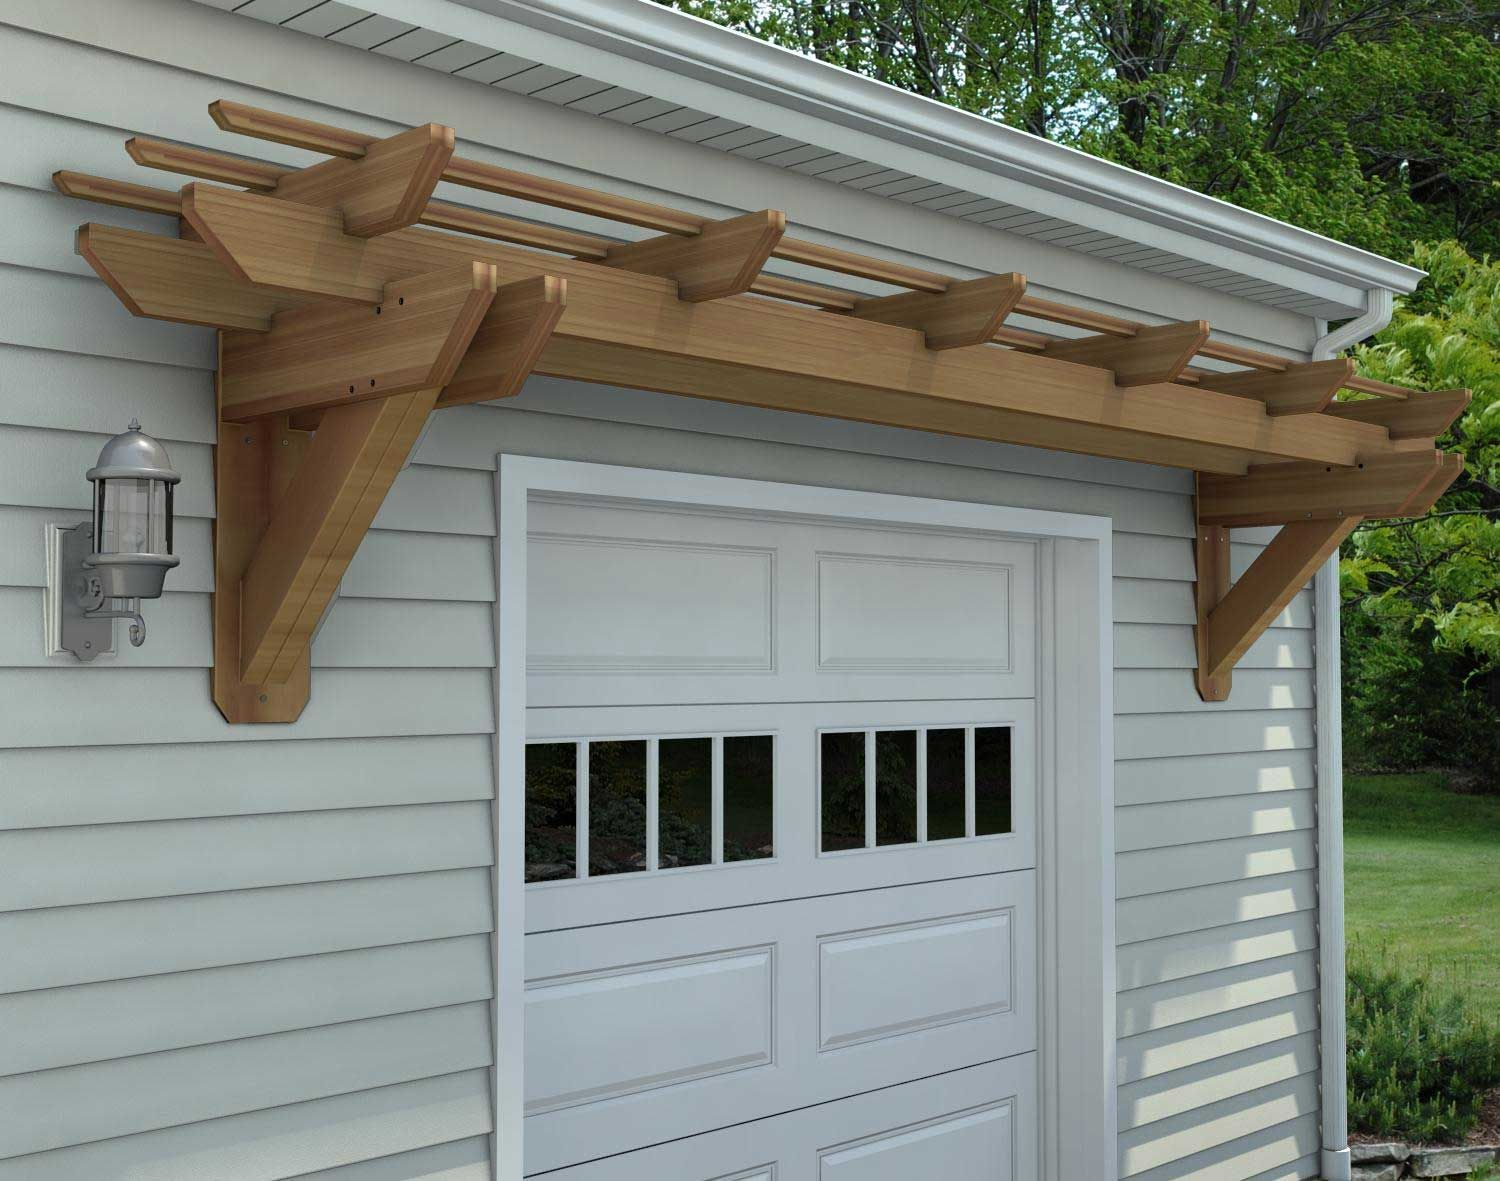 Eyebrow Wall Mount Pergolas | Pergolas by Style ...